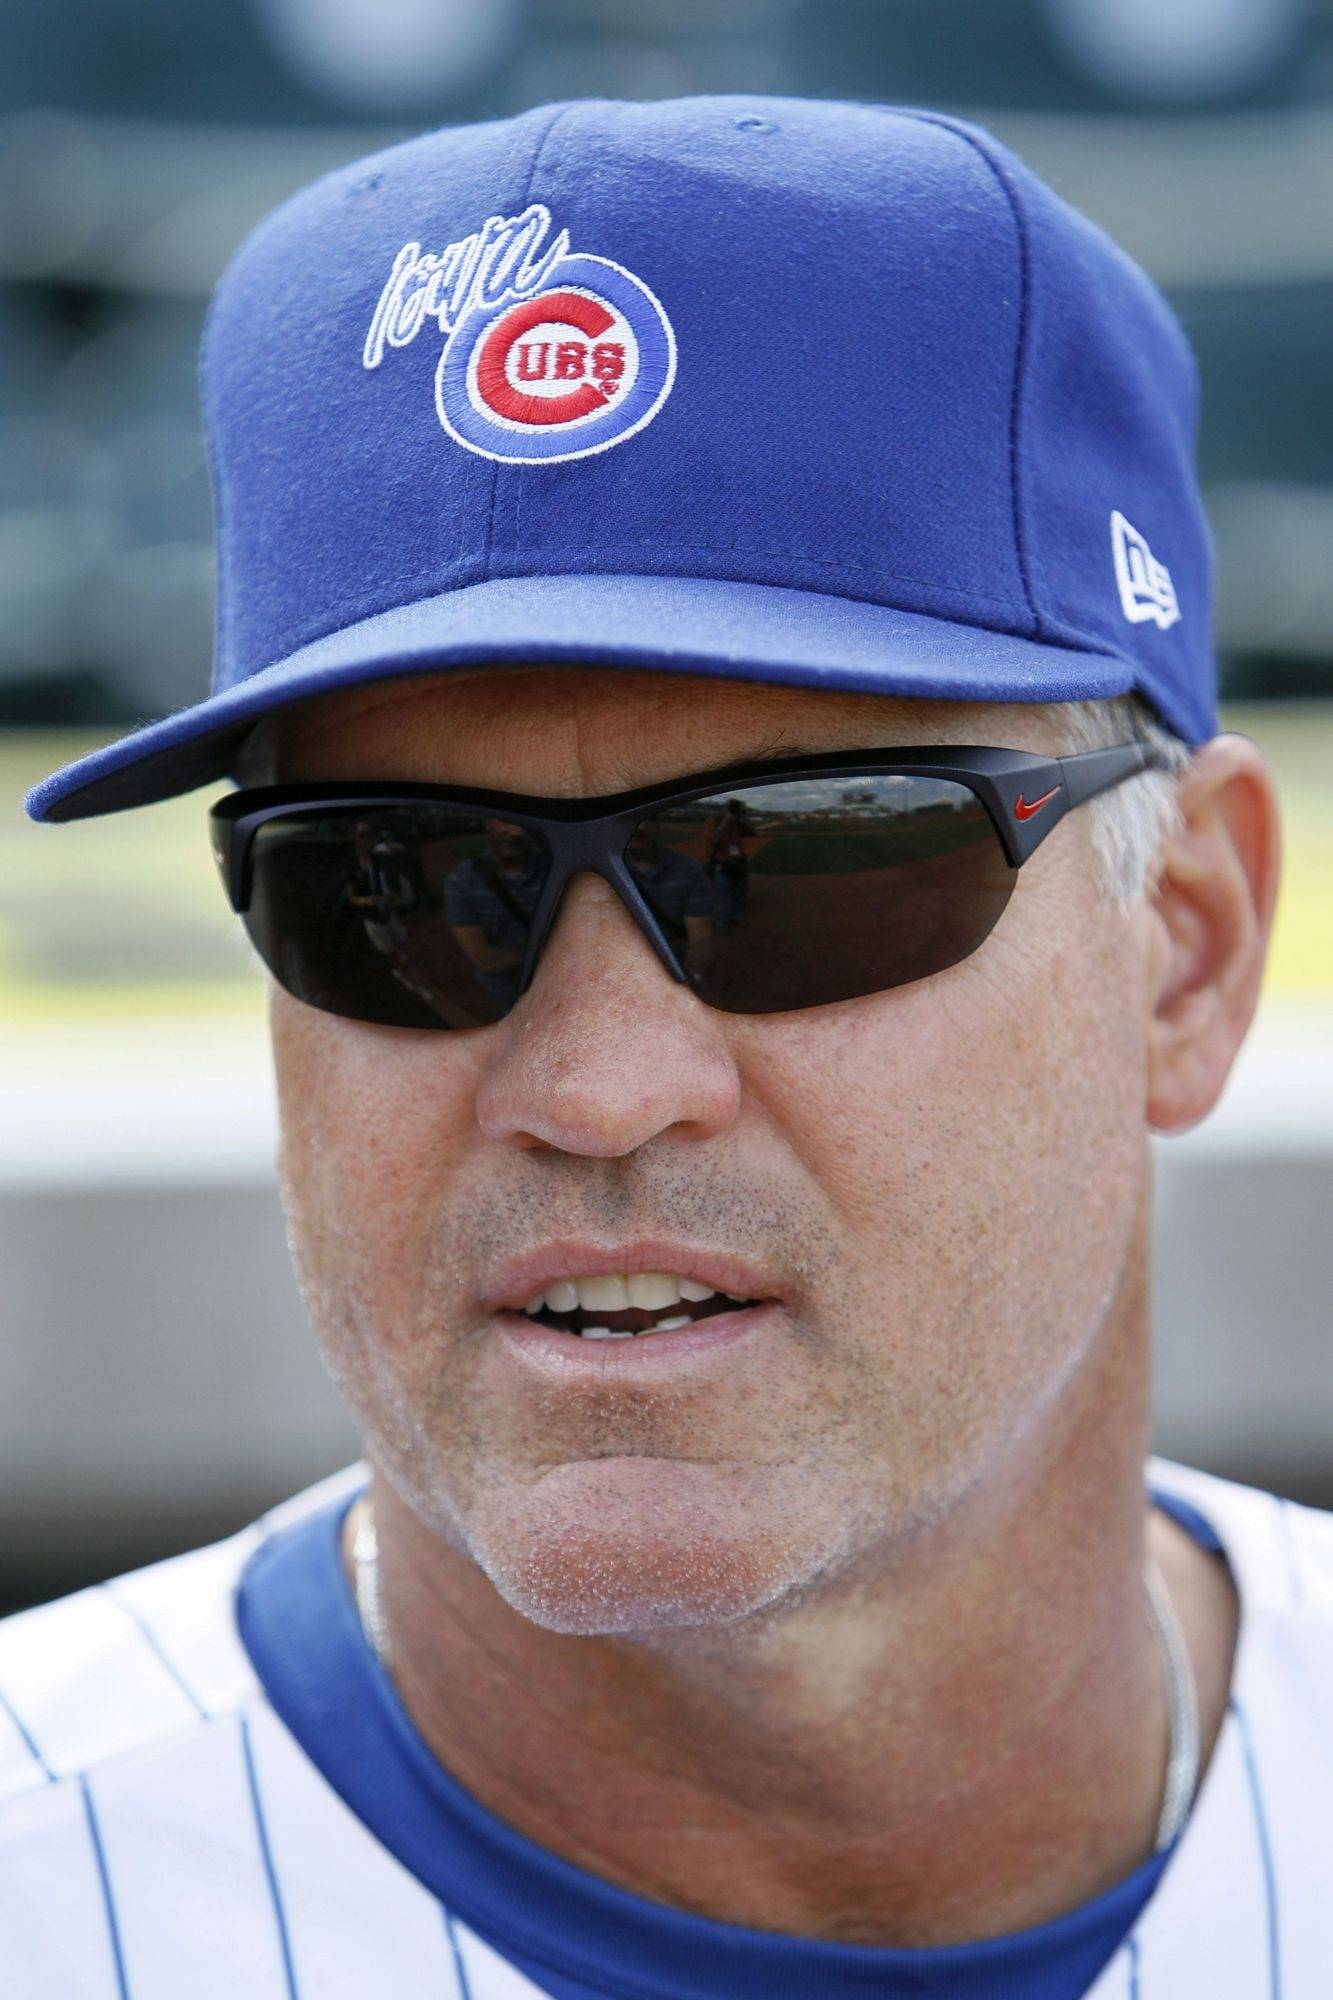 Iowa Cubs manager Ryne Sandberg